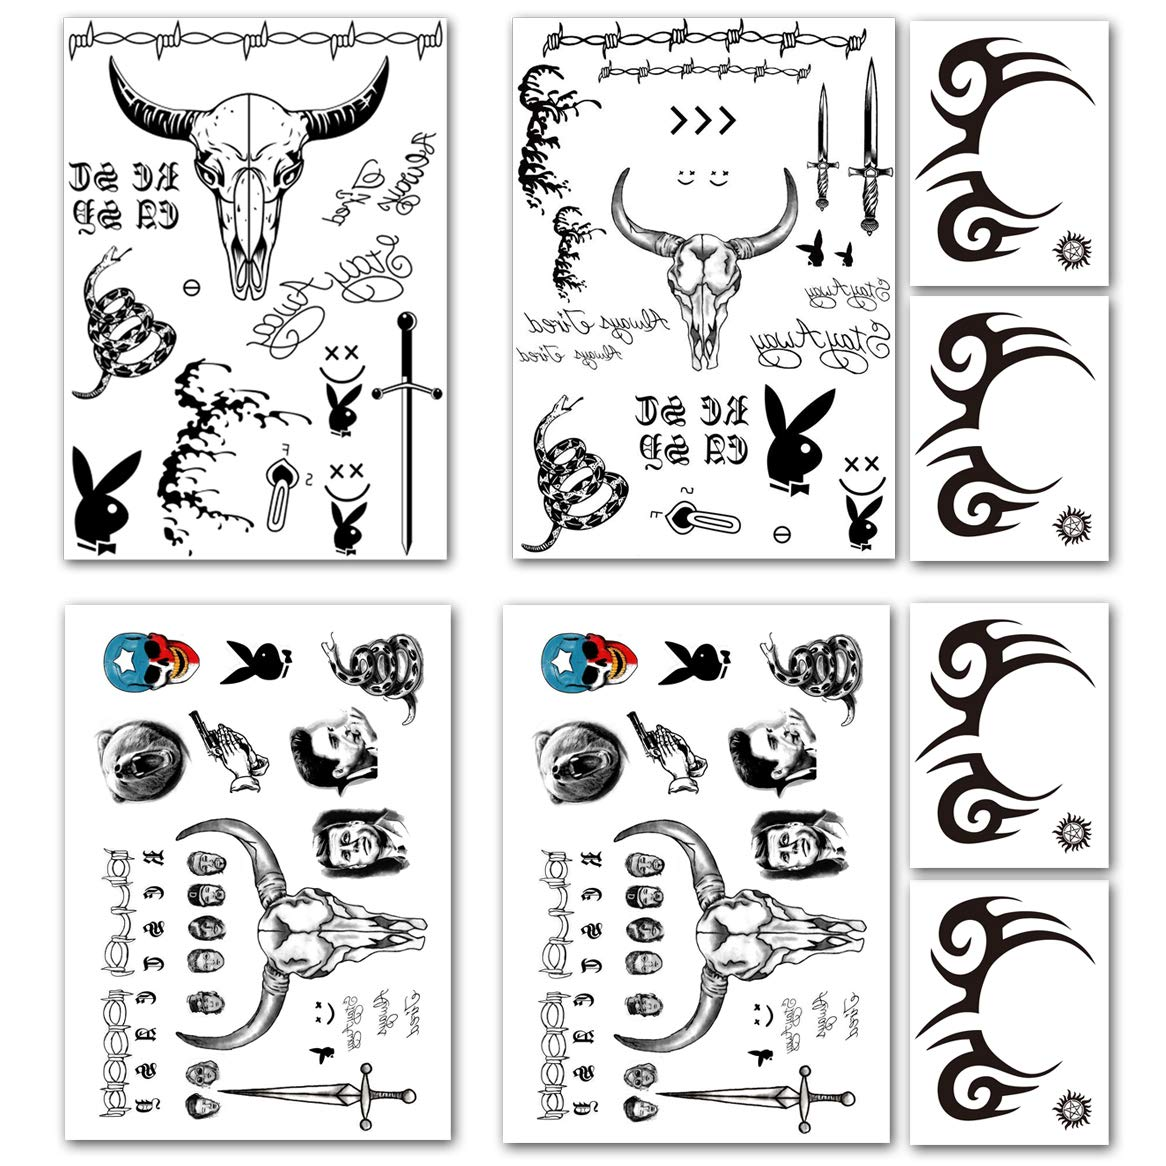 Leoars Halloween Temporary Tattoos, Tribal Face Tattoo Stickers, Black Totem Fake Tattoos Halloween Props Cosplay Makeup, 8-Sheet